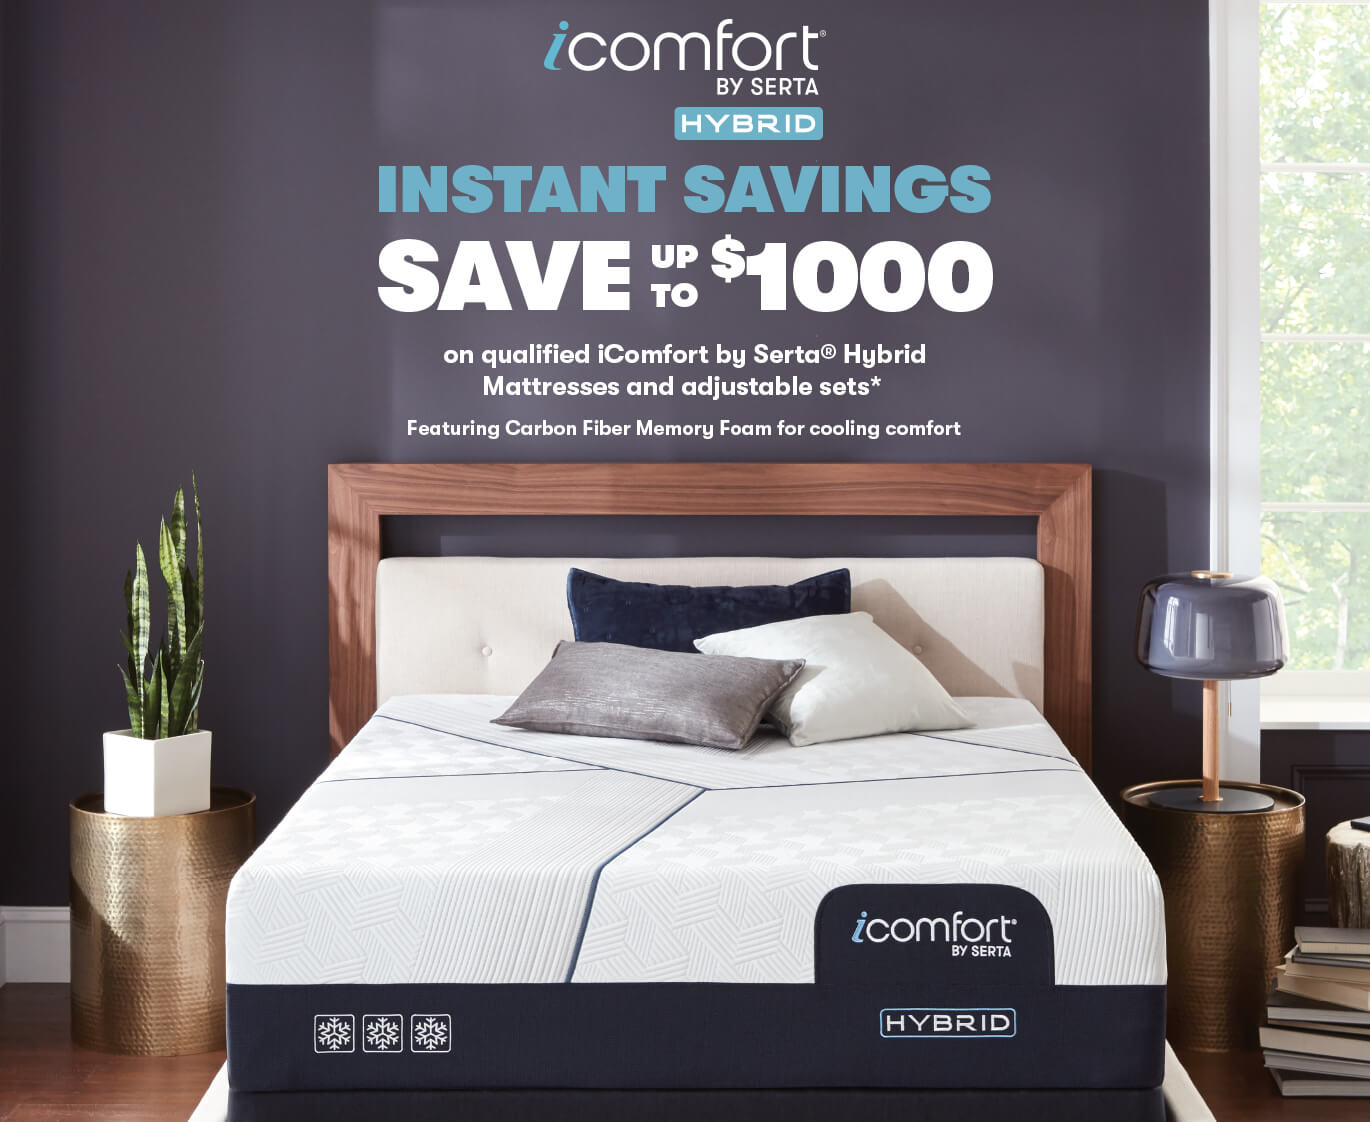 Serta iComfort Hybrid Memorial Day Savings